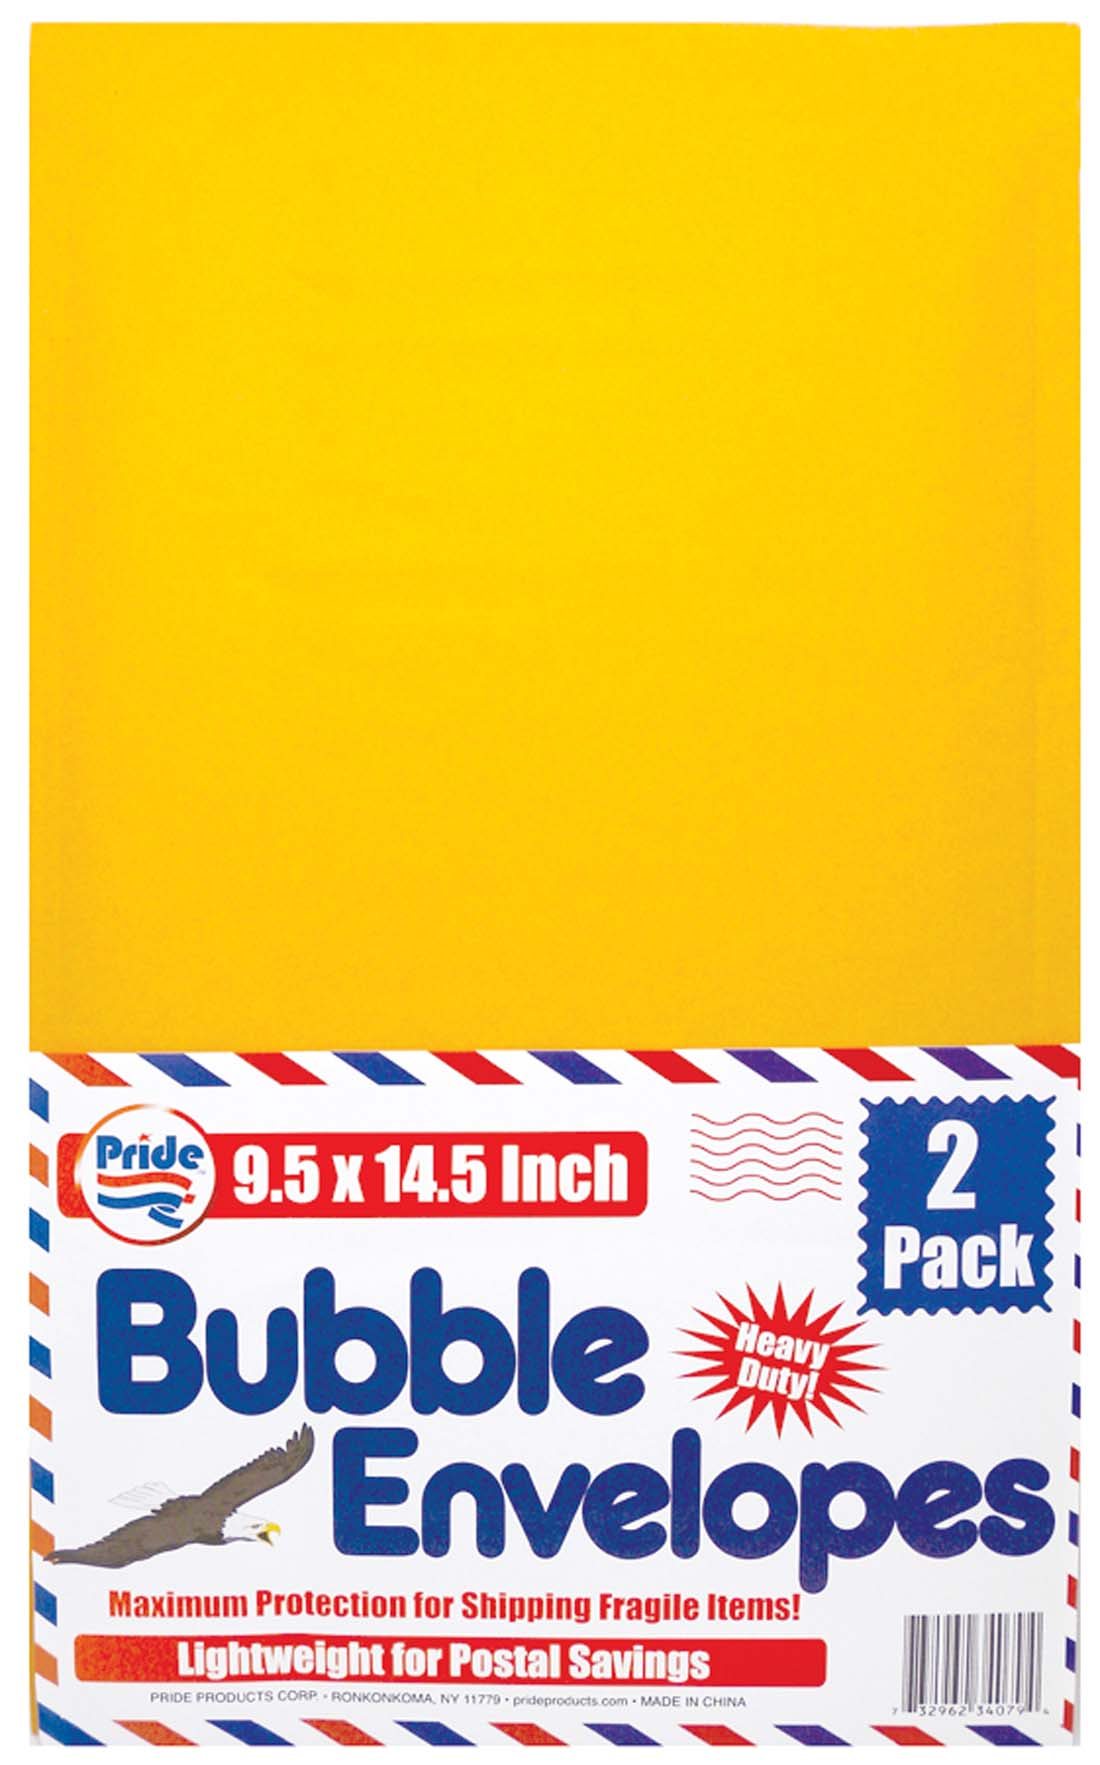 View BUBBLE ENVELOPE 2 PACK 9.5 X 14.5 INCH